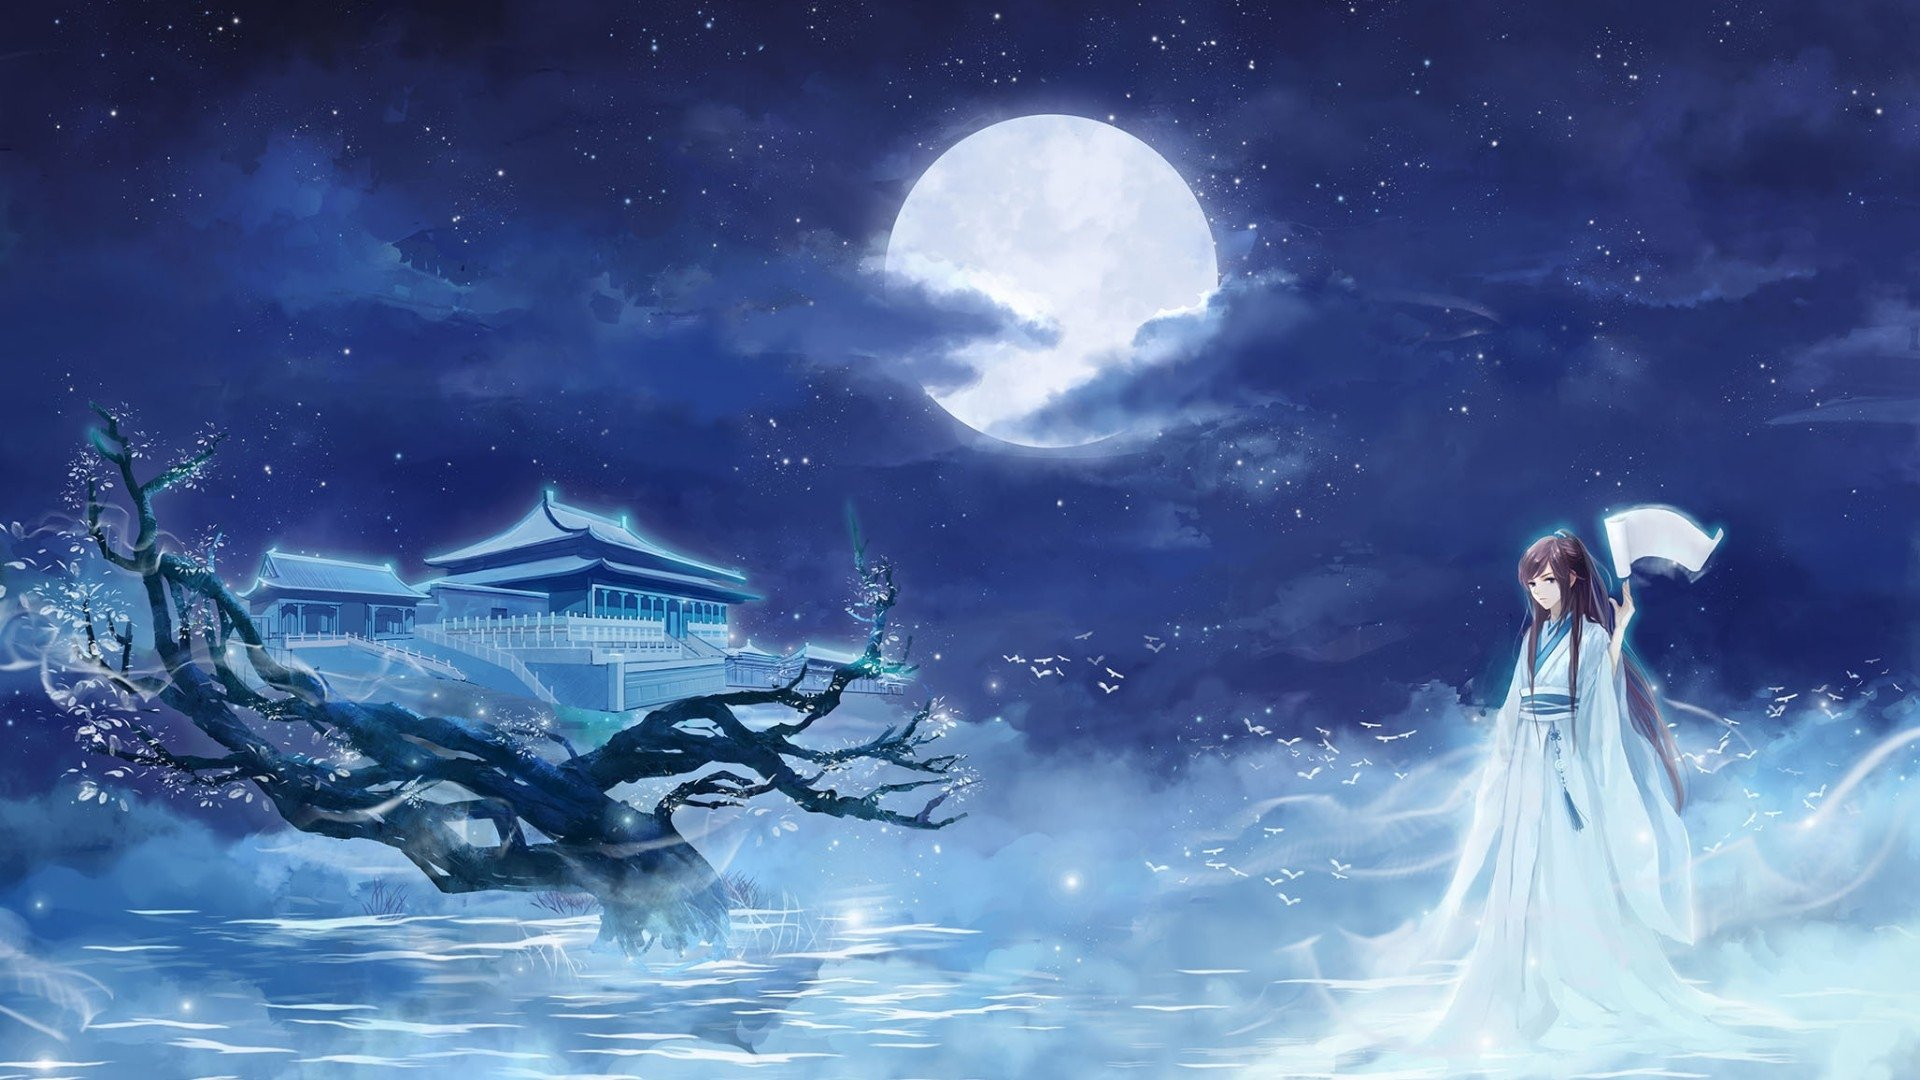 Anime Girl On Full Moon Nigjt Hd Wallpaper Background Image 1920x1080 Id 1000837 Wallpaper Abyss